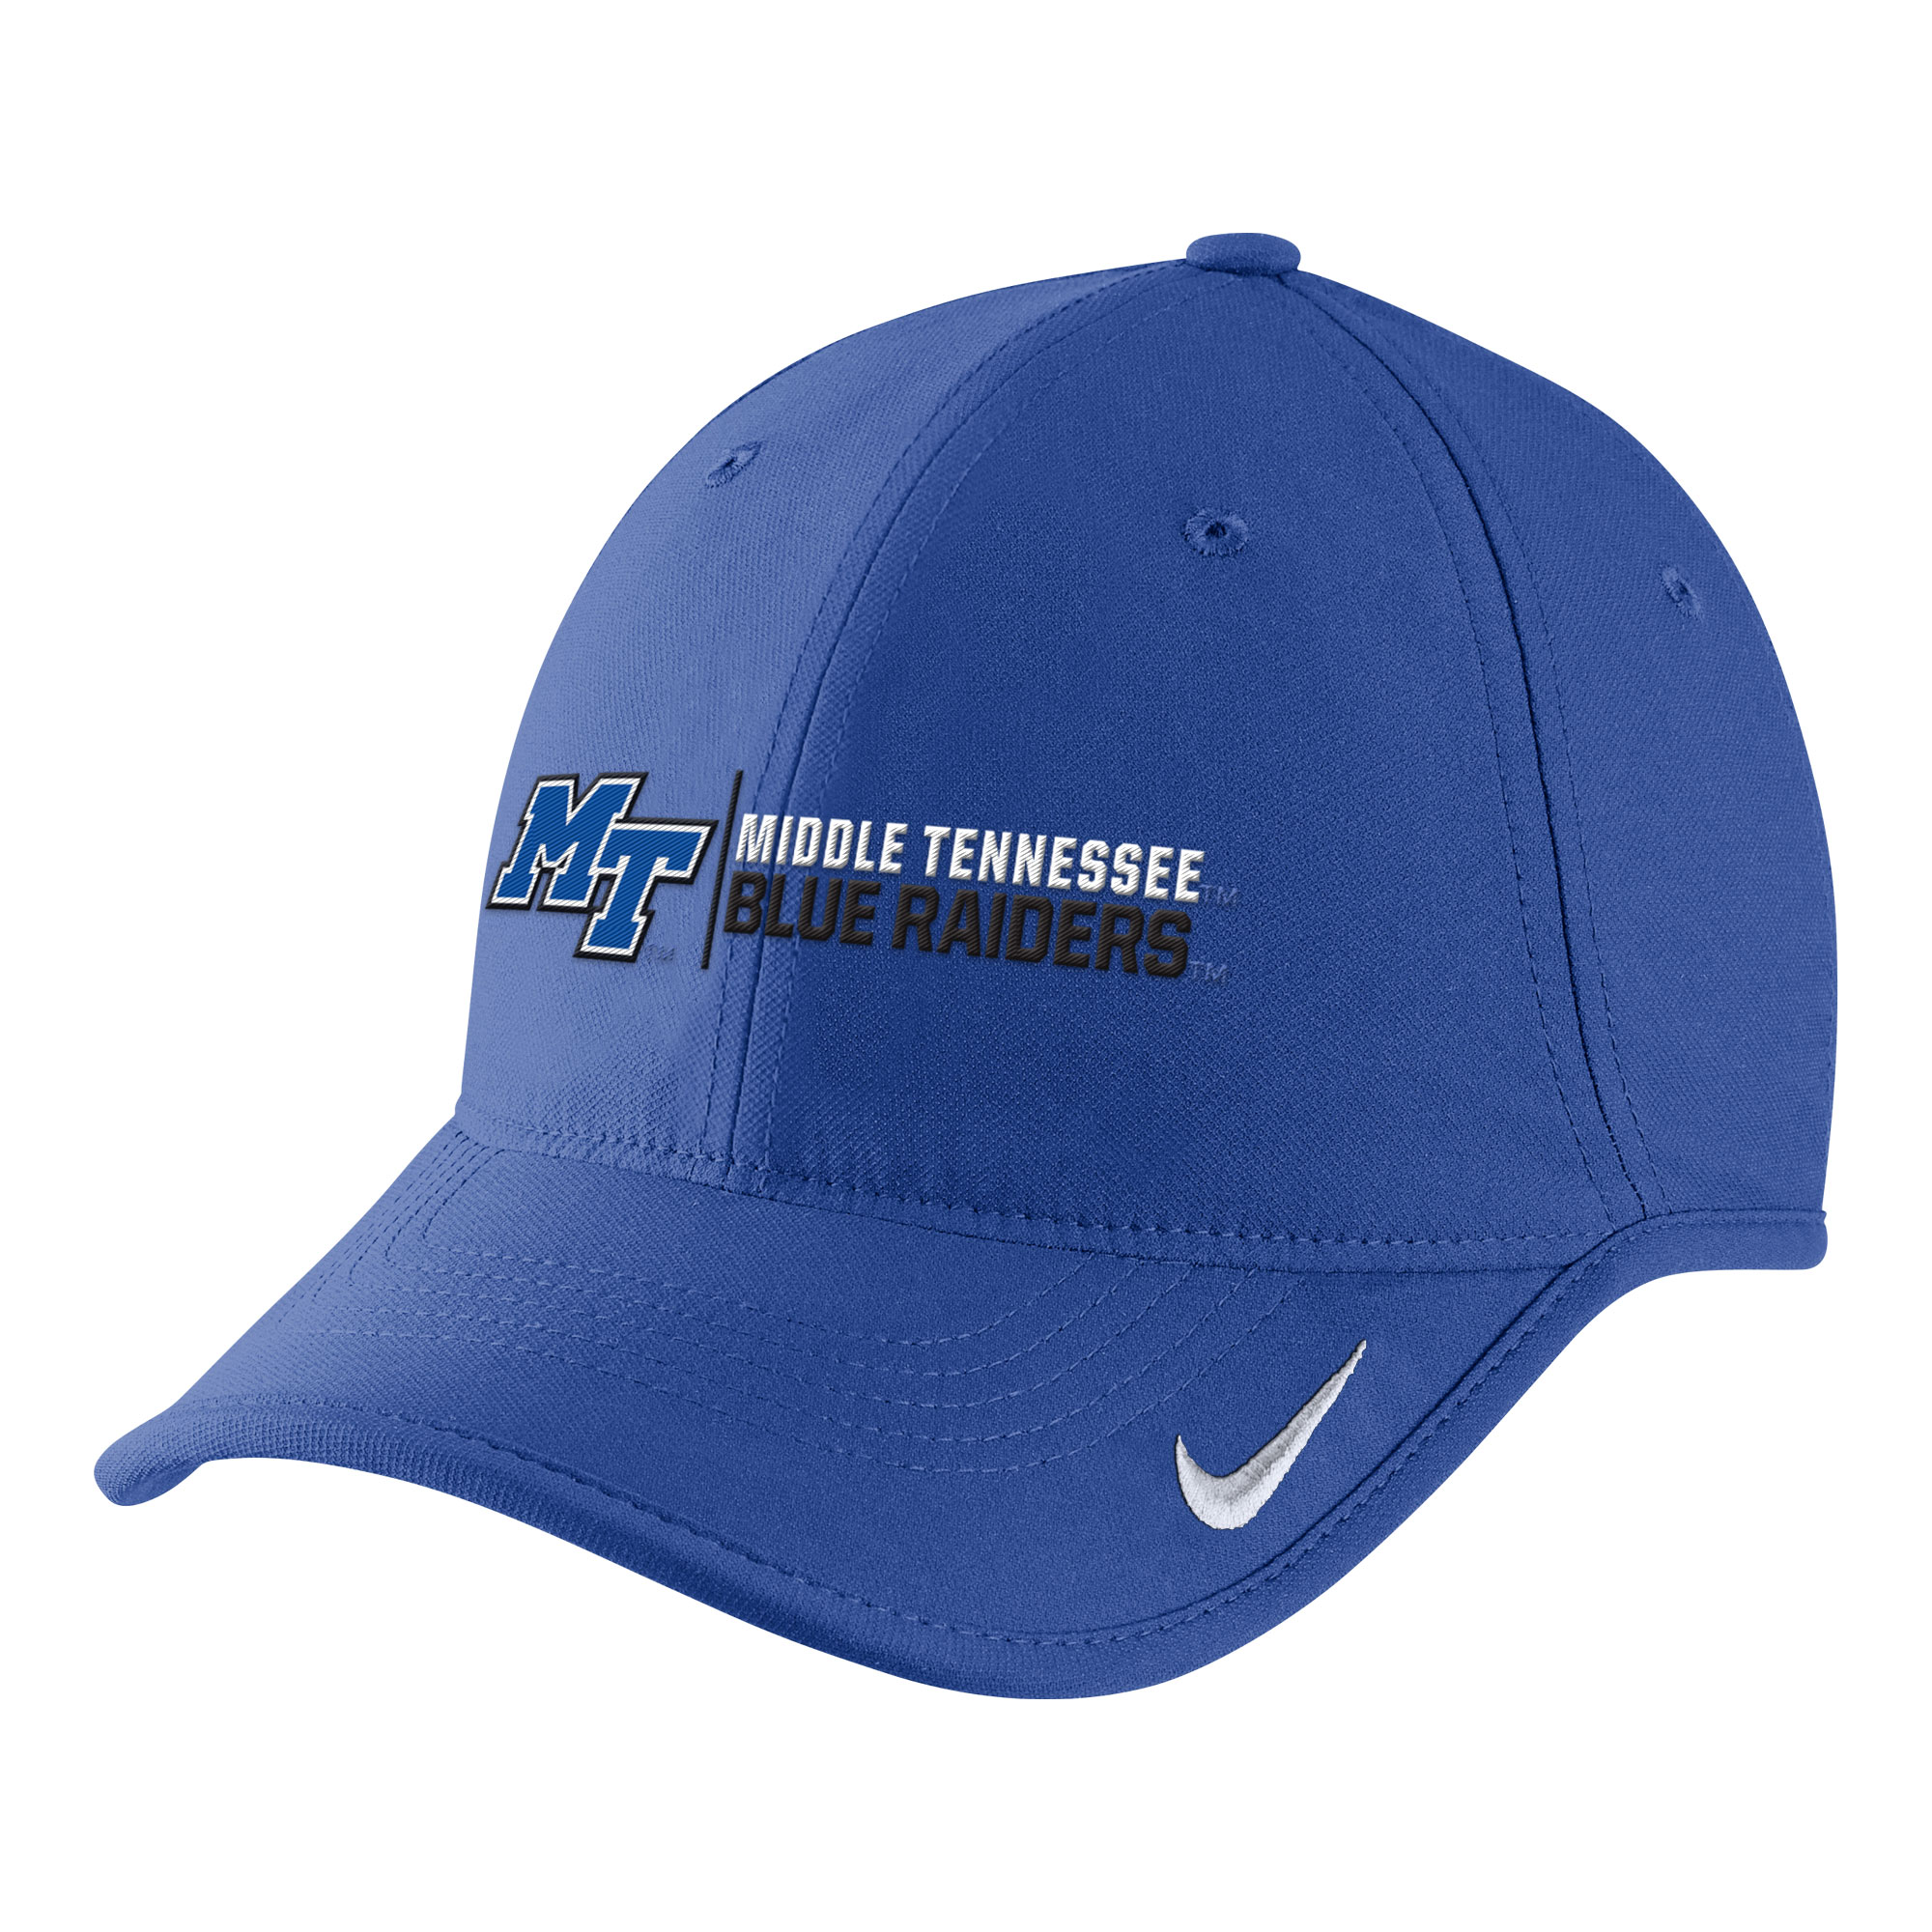 MT Blue Raiders Logo Nike® Aero Adjustable Hat